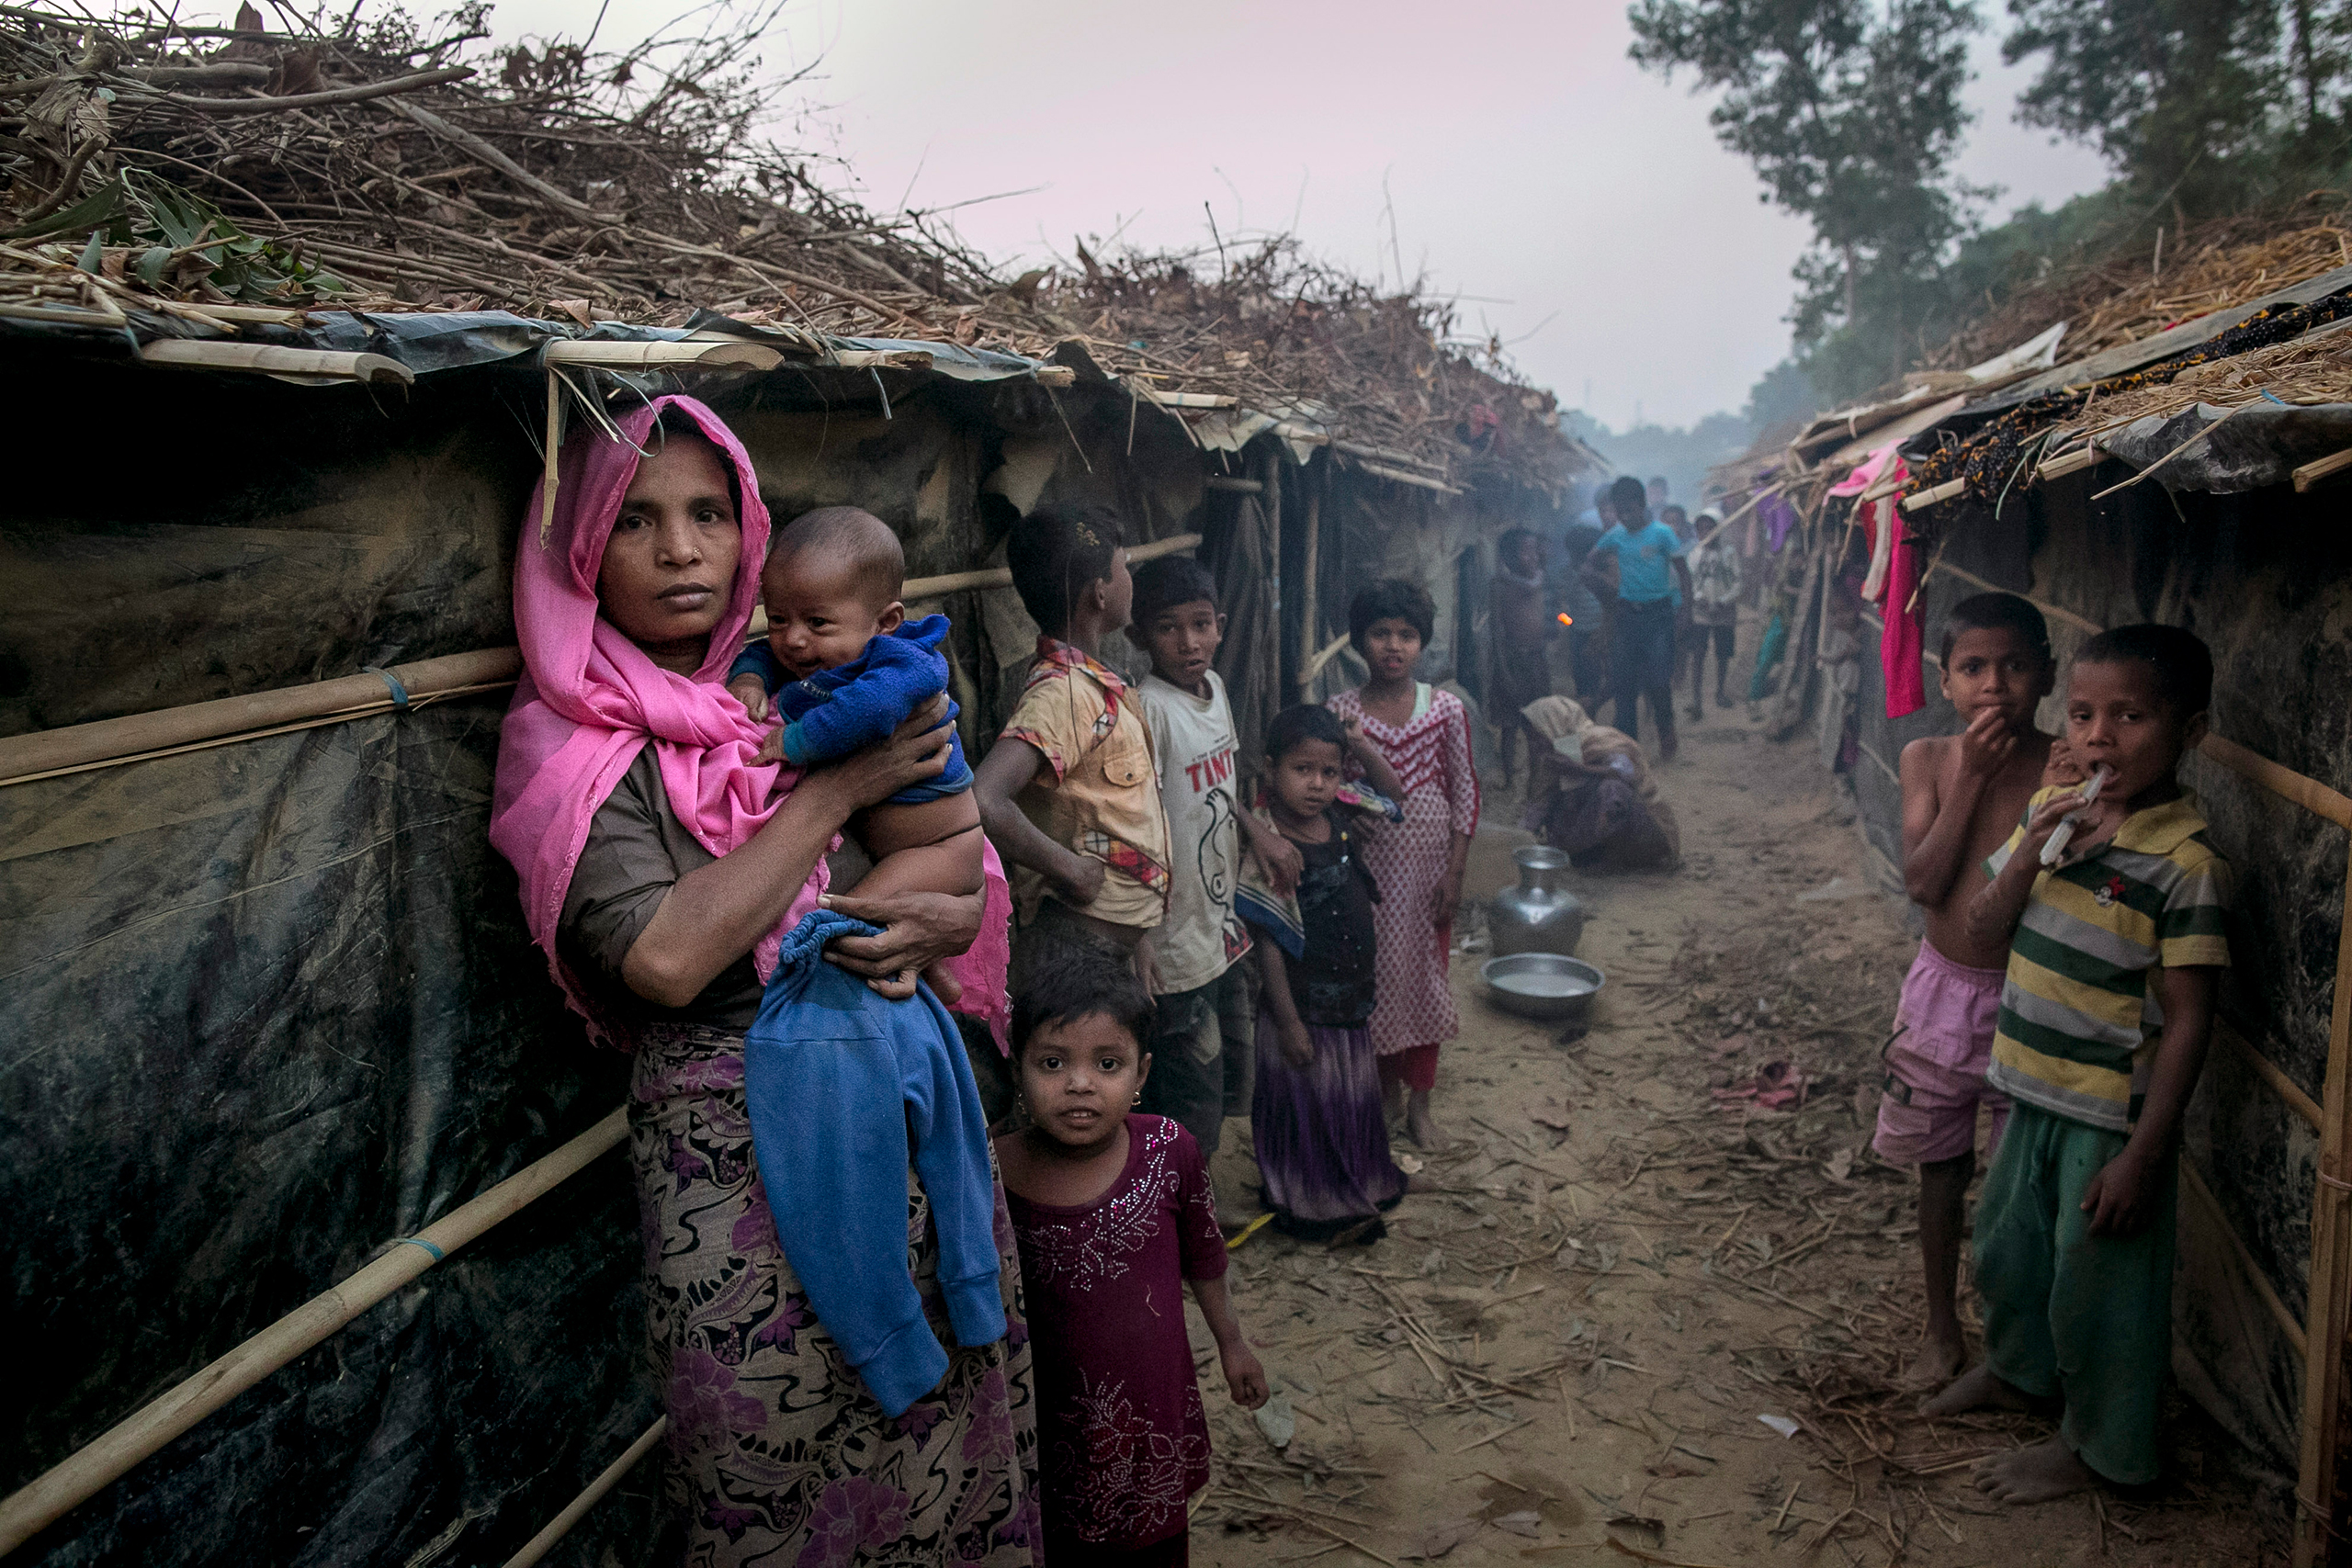 People stand outside their shelters in the Kutapalong Rohingya refugee camp in Cox's Bazar, Bangladesh, on Feb. 8, 2017